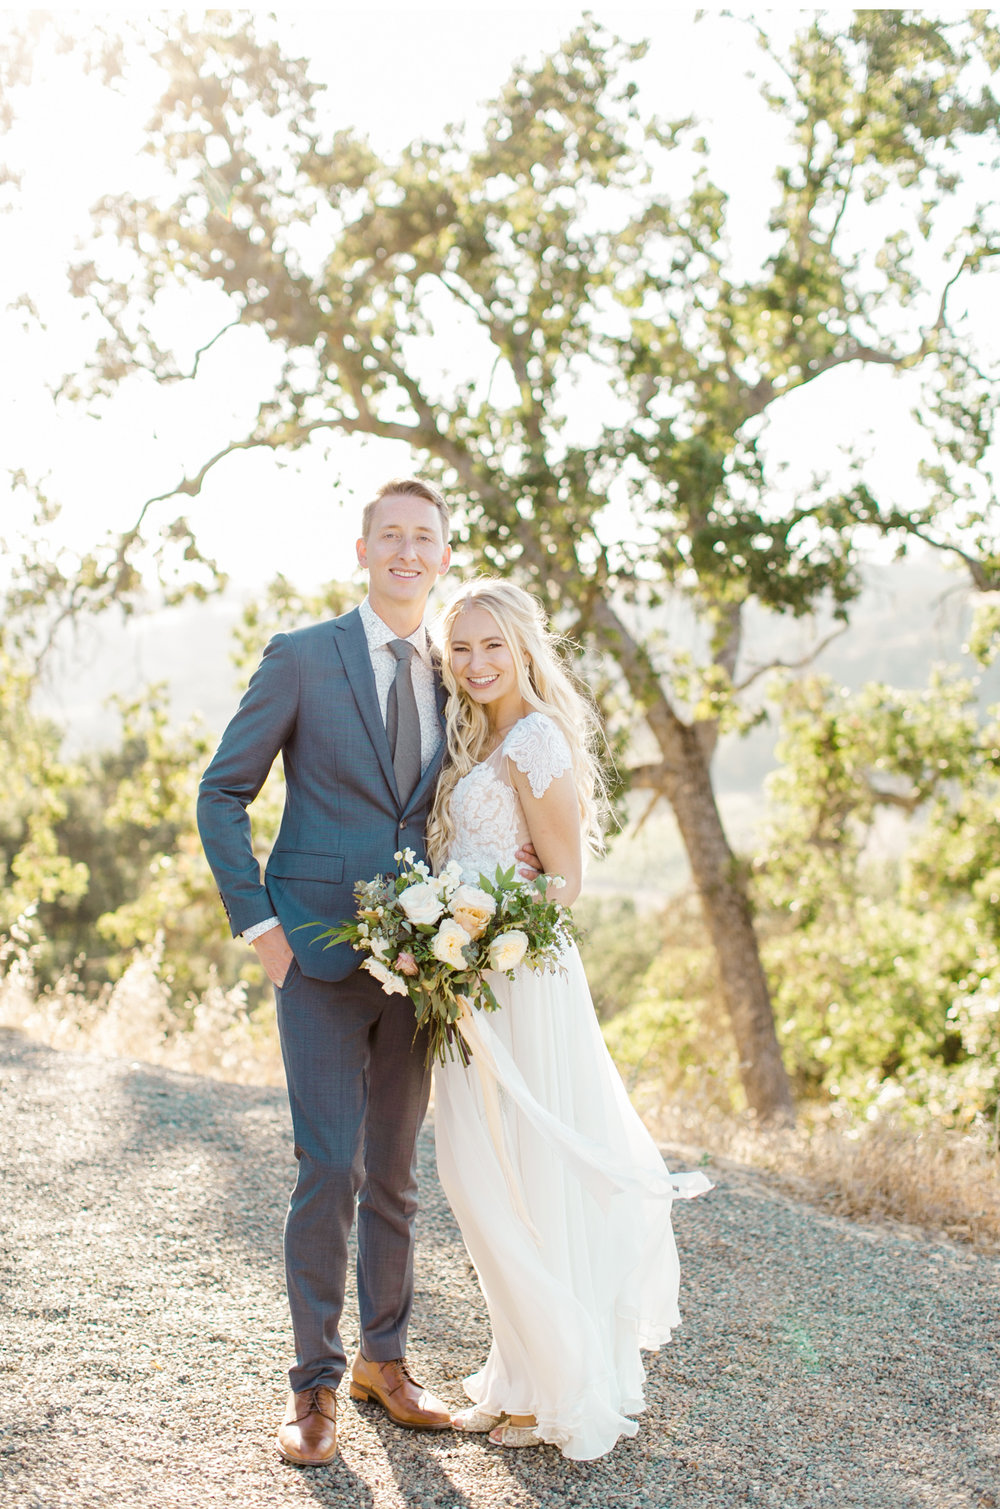 Natalie-Schutt-Photography's-Wedding-Style-Me-Pretty-Paso-Robles_16.jpg